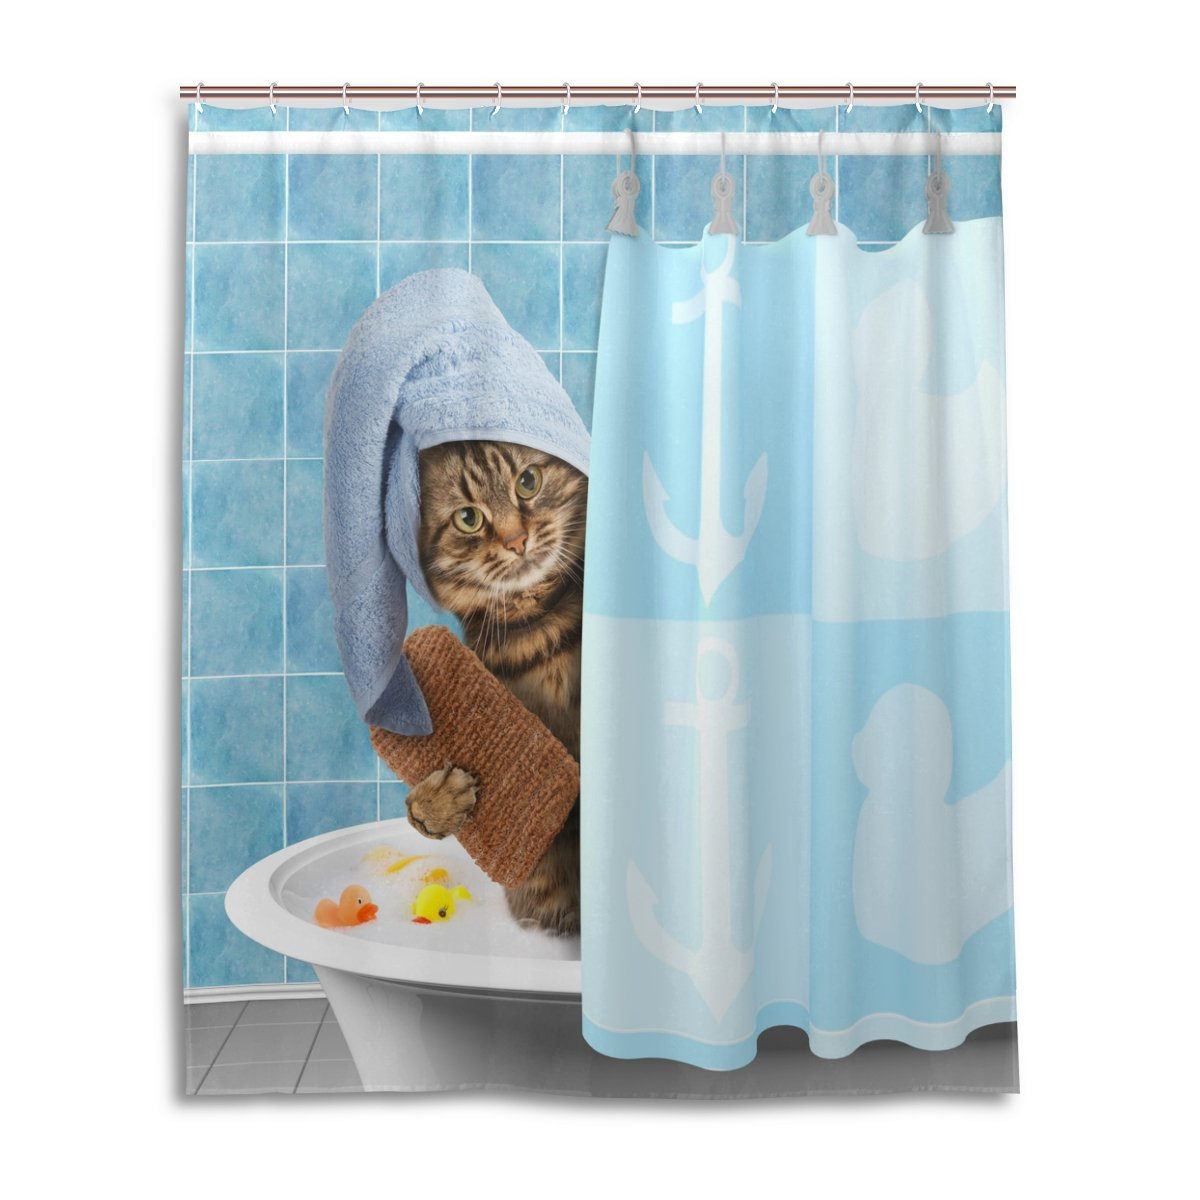 ALAZA Funny Kitten Cat Taking Bath Home Decor Shower Curtain Polyester Waterproof Mildew Proof Bath Room Shower Curtain with Hooks 60 W x 72 H inches